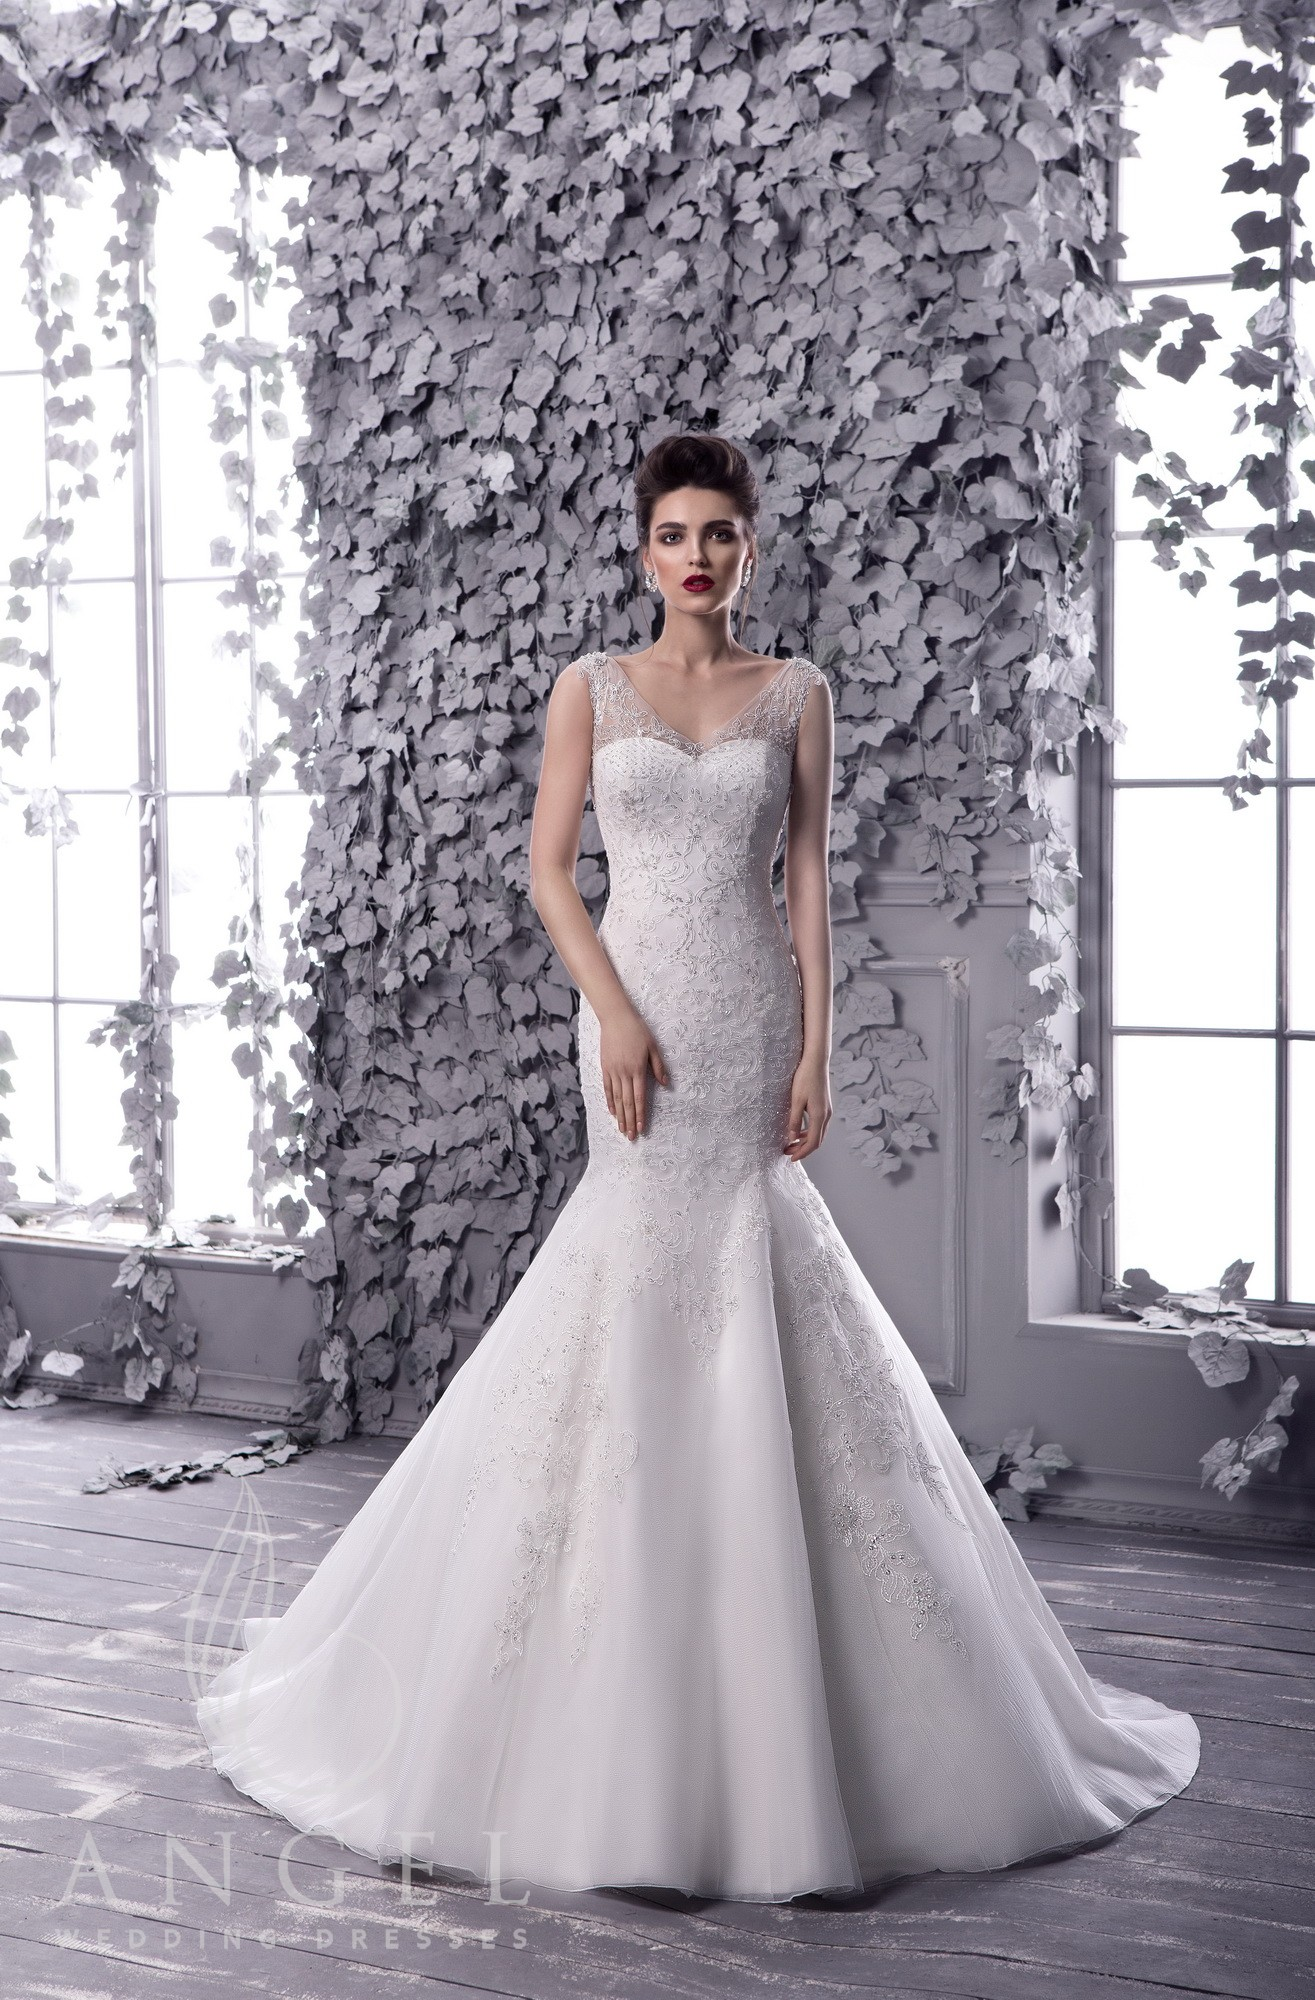 https://angel-novias.com/images/stories/virtuemart/product/SAPPHIRE.jpg